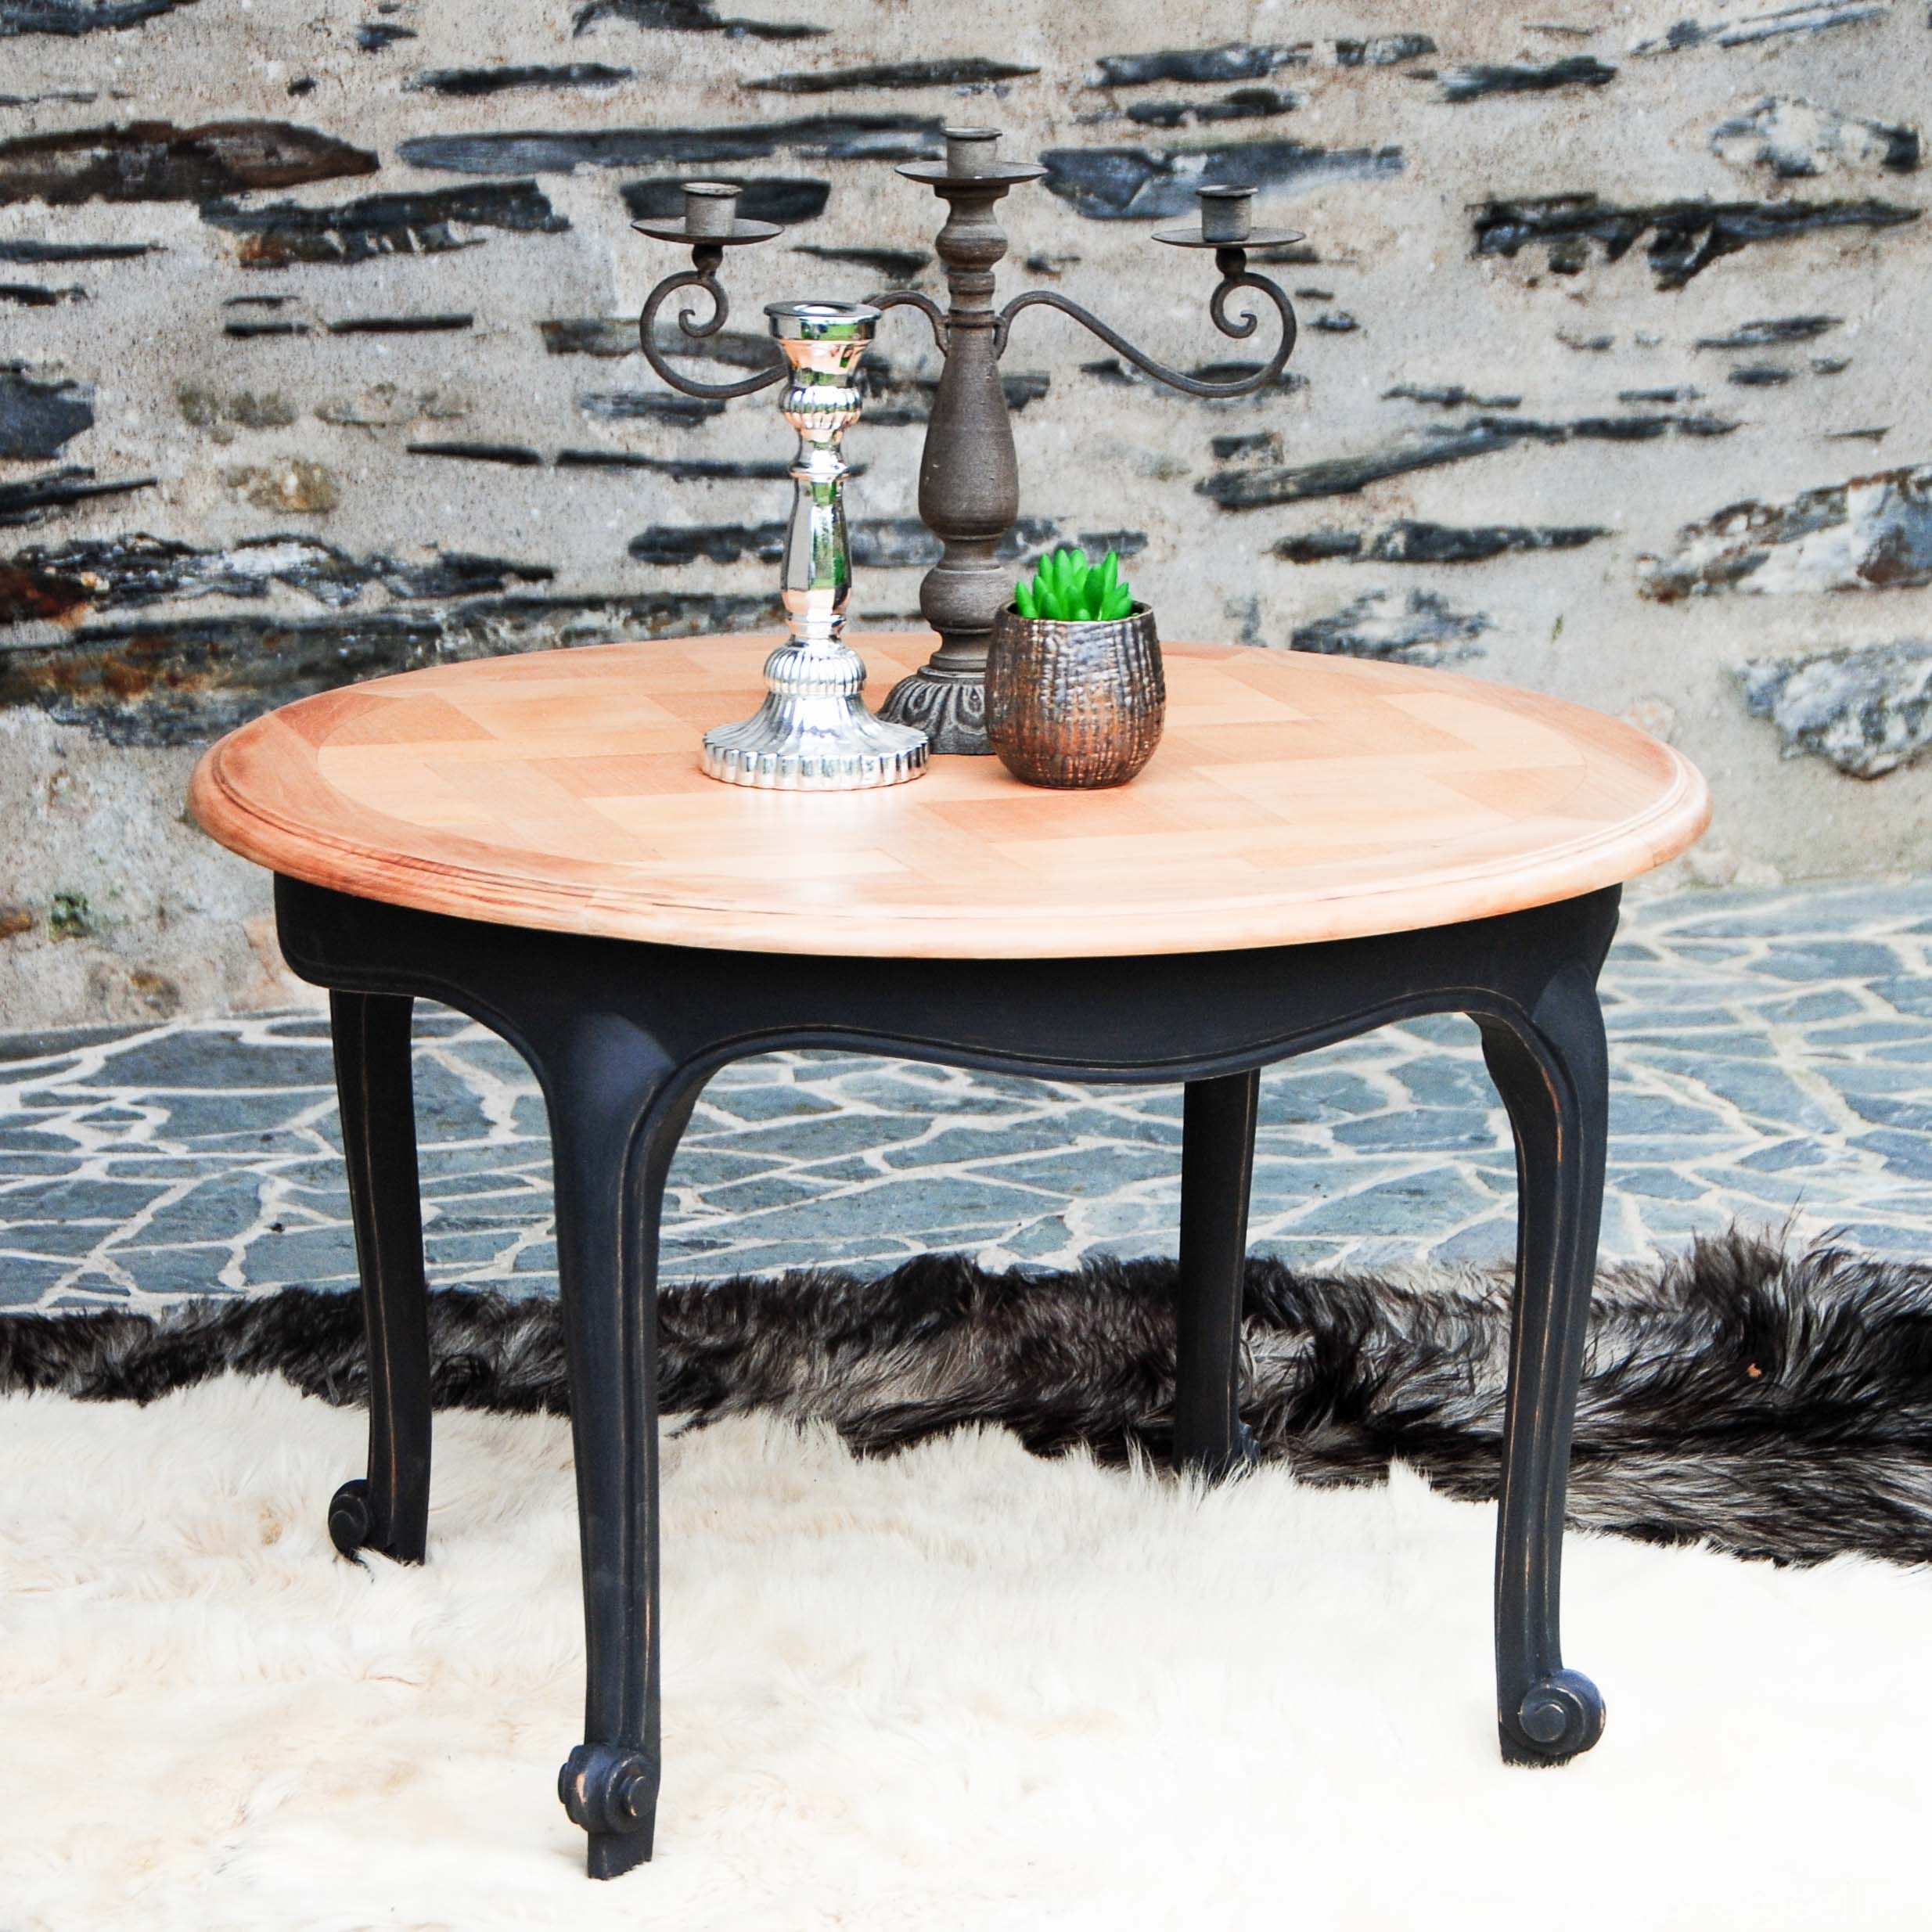 Table Basse Ronde Baroque 84 Sur Www Grisgroseille Com Table Basse Table Basse Baroque Table Basse Ronde